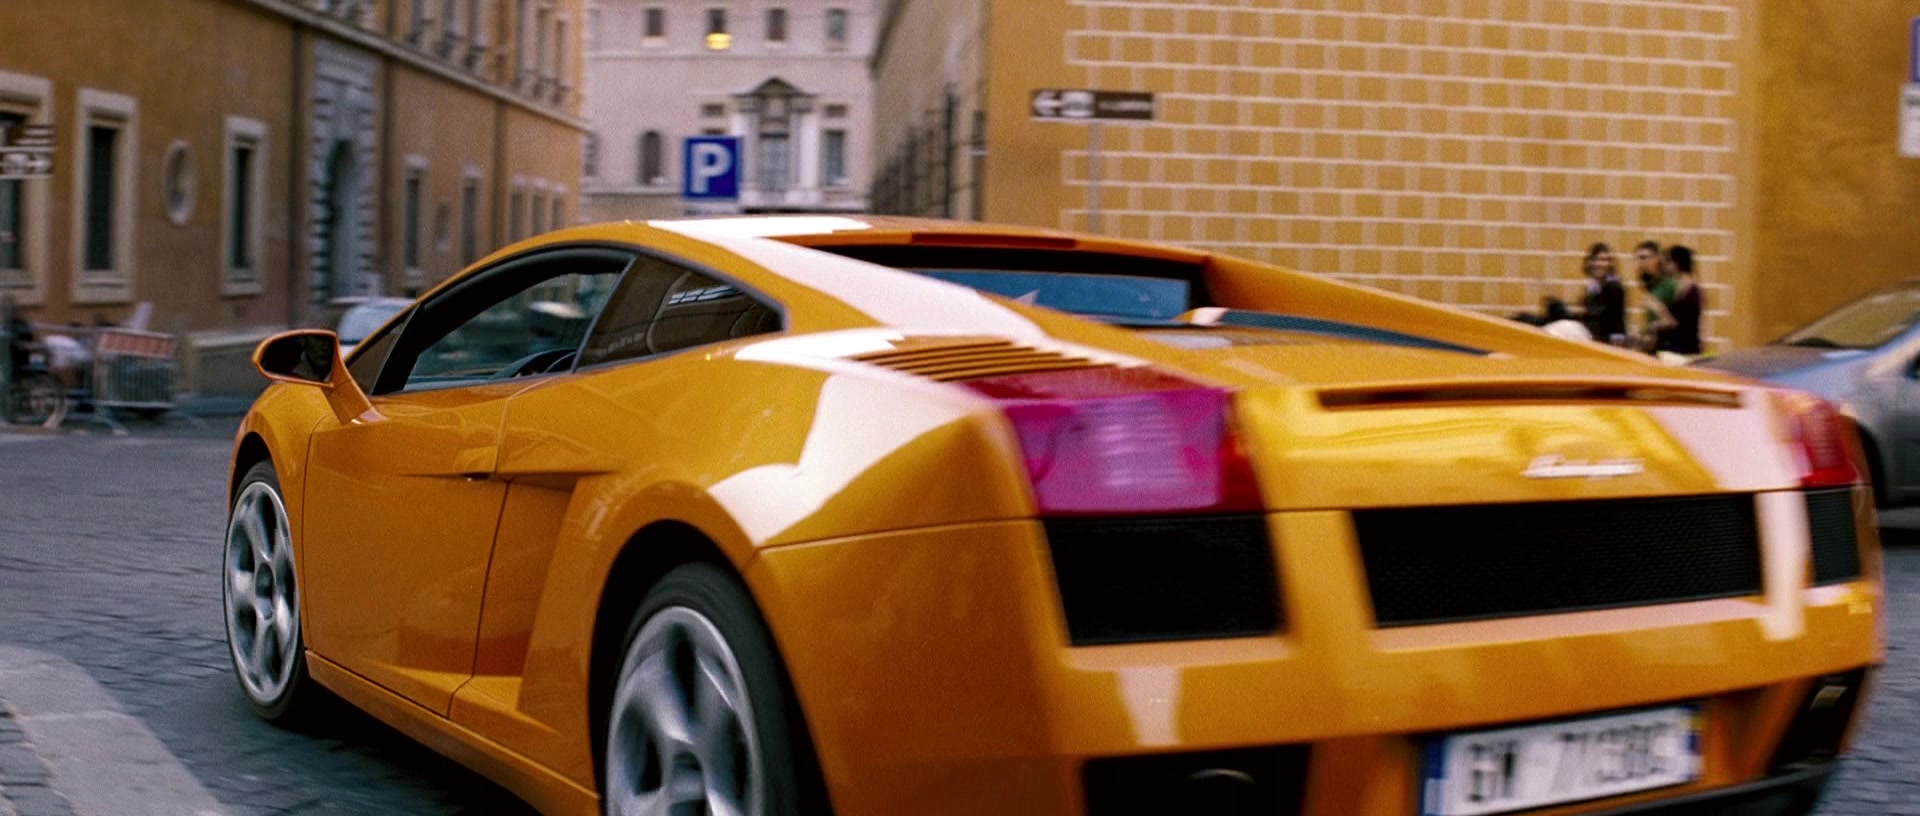 Lamborghini Gallardo 2017 >> Lamborghini Gallardo Orange Sports Car Driven by Maggie Q ...